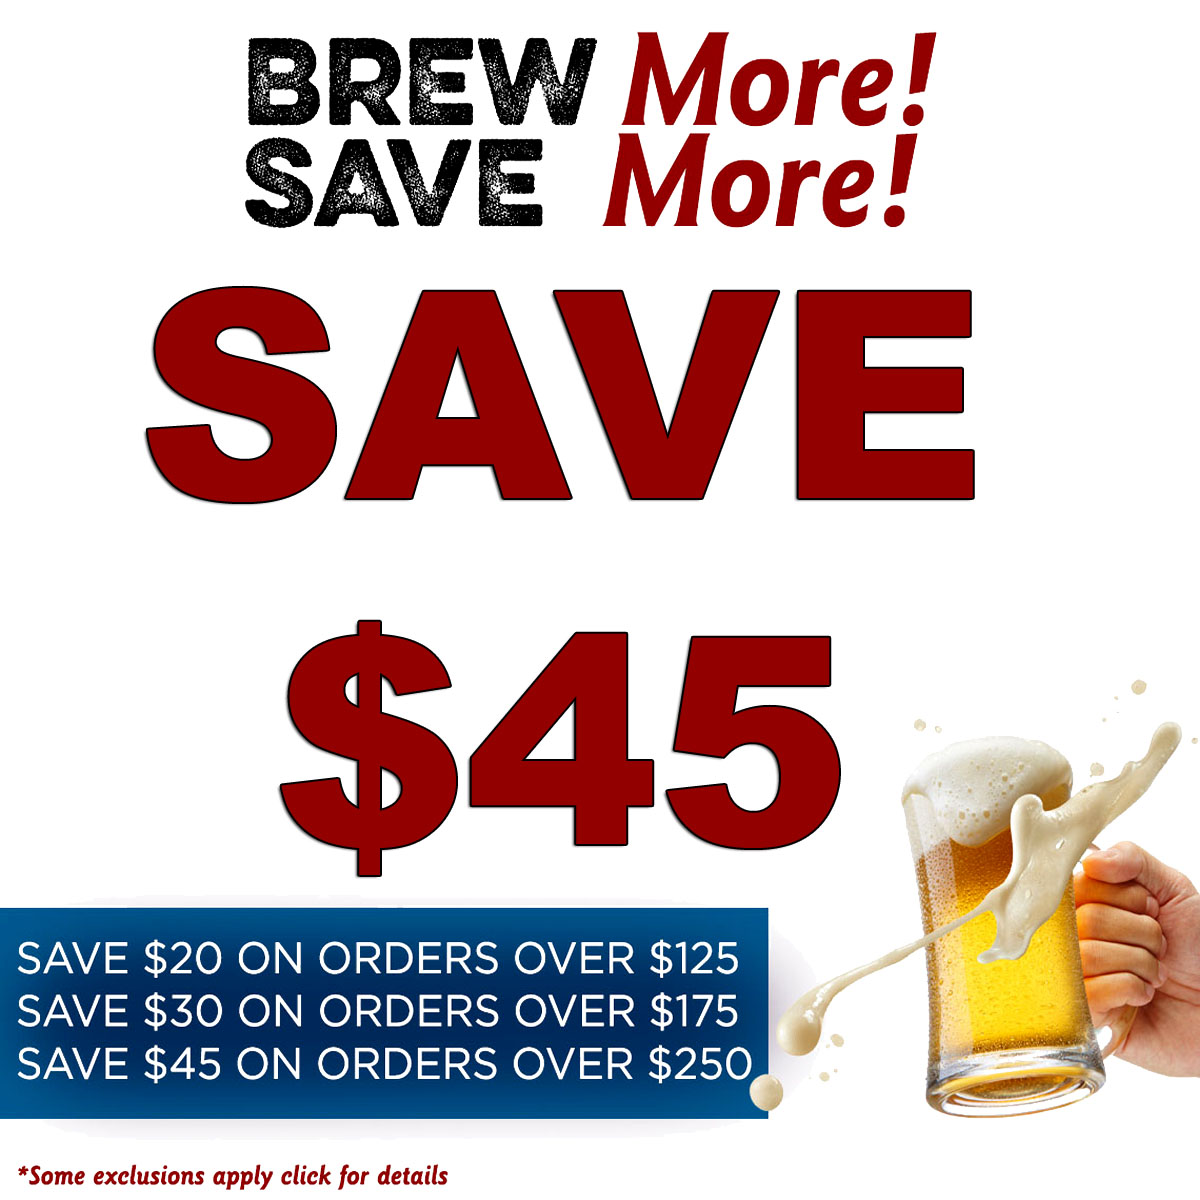 Home Wine Making Coupon Codes for Save Up To $45 On Your More Beer Purchase With This MoreBeer.com Promo Code Coupon Code